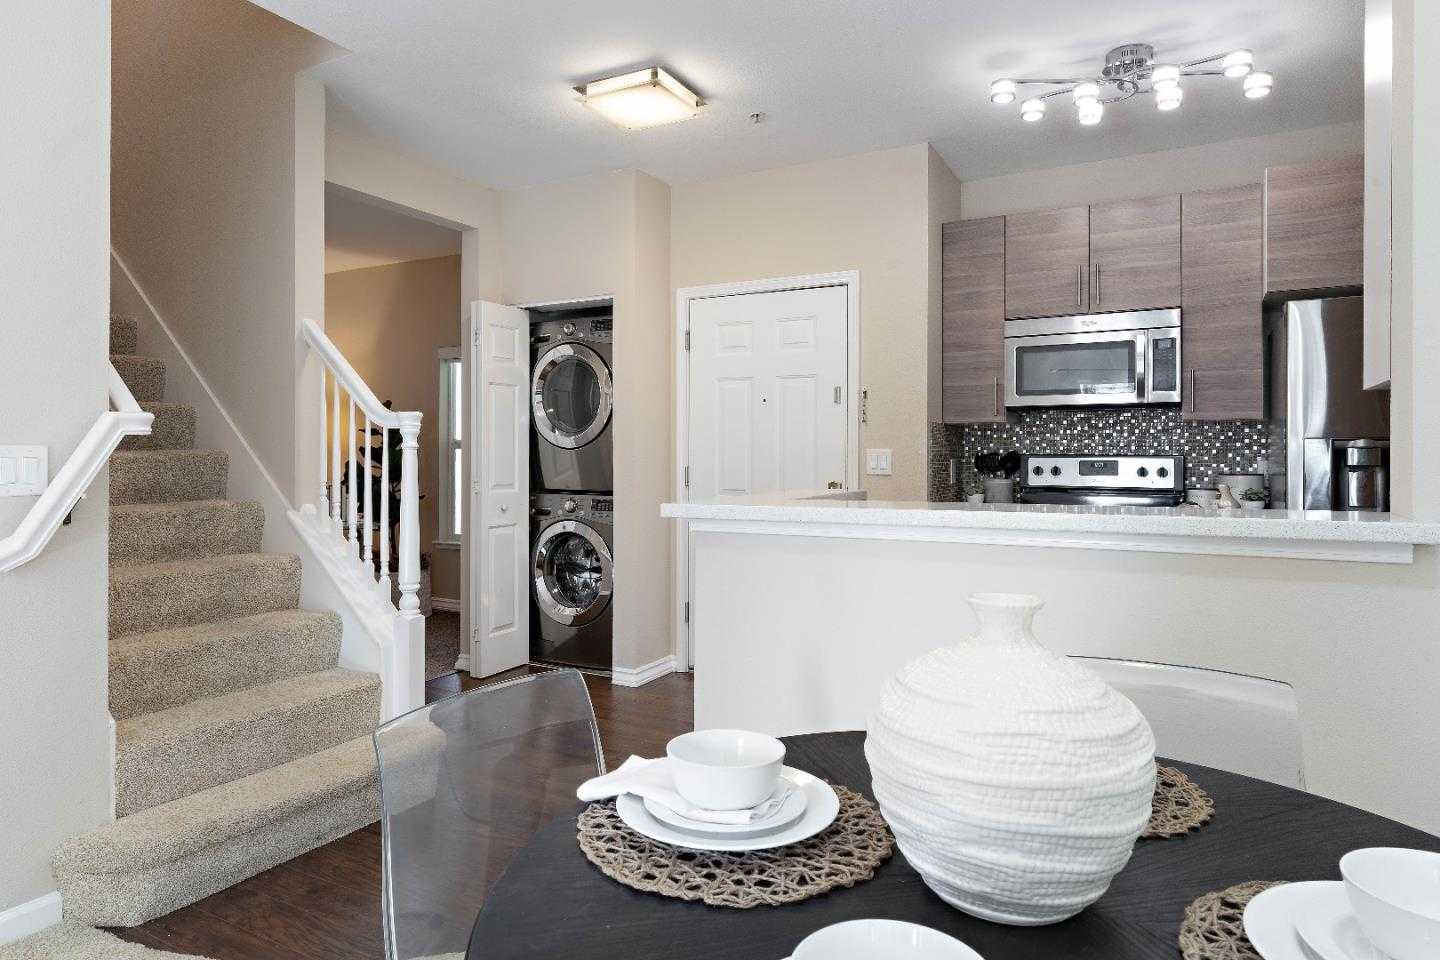 $1,198,000 - 2Br/2Ba -  for Sale in Mountain View